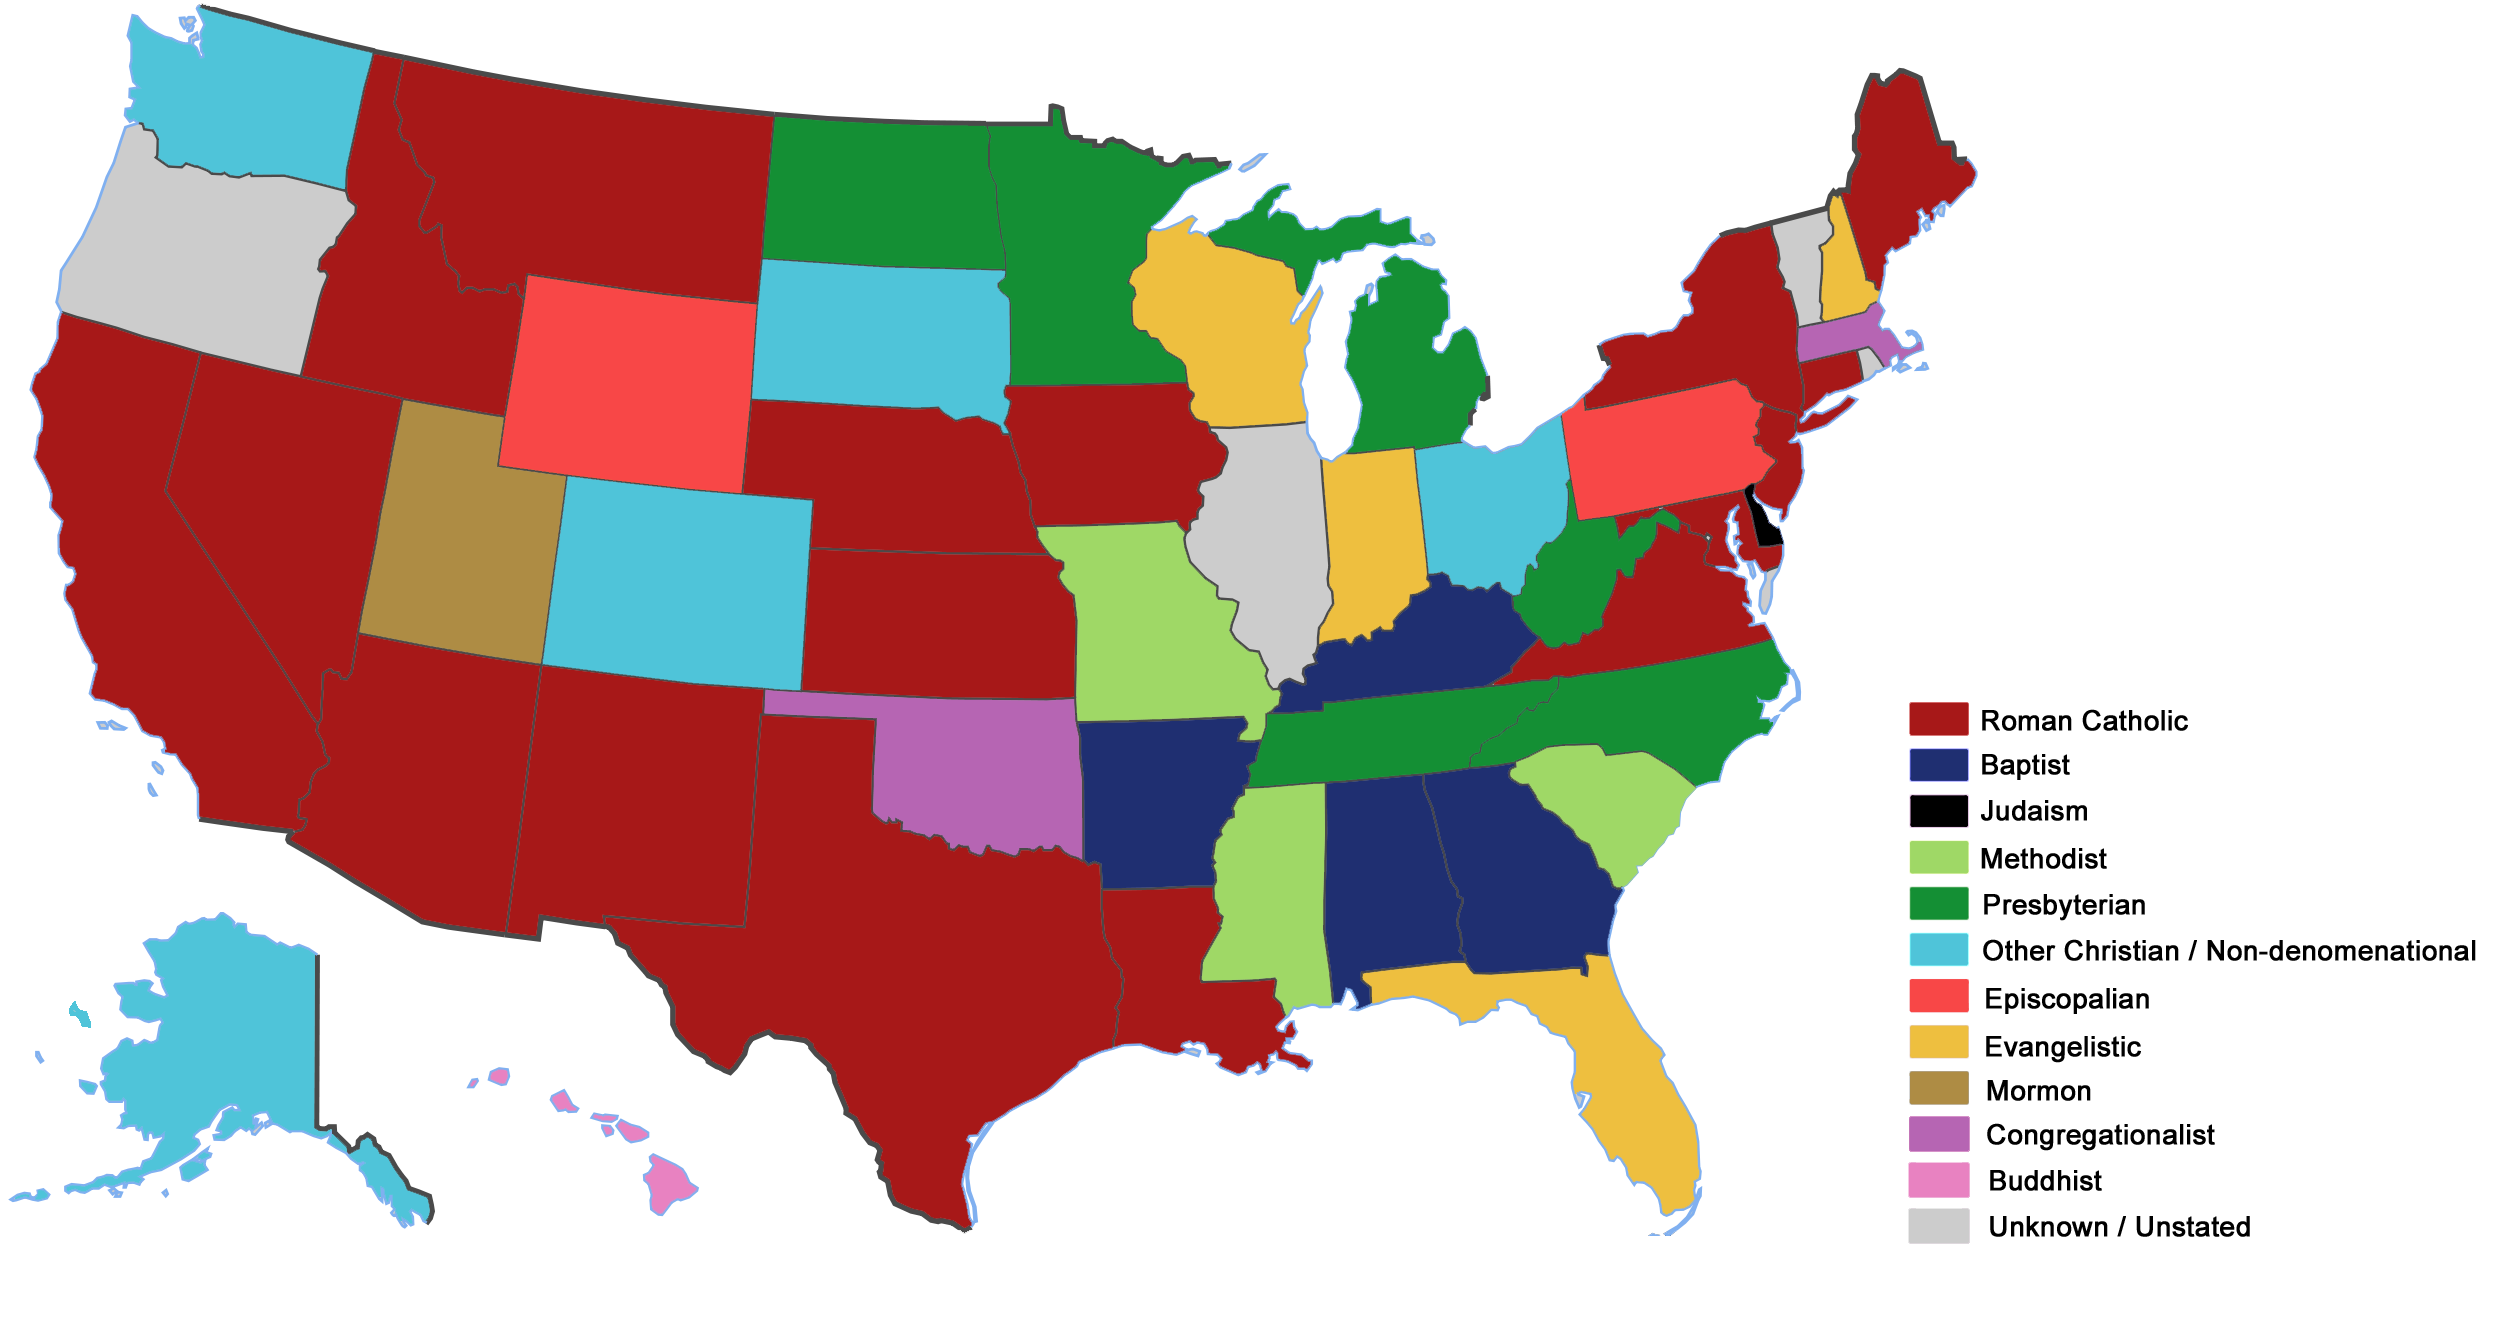 FileMap of Governors in the United States by Religionpng